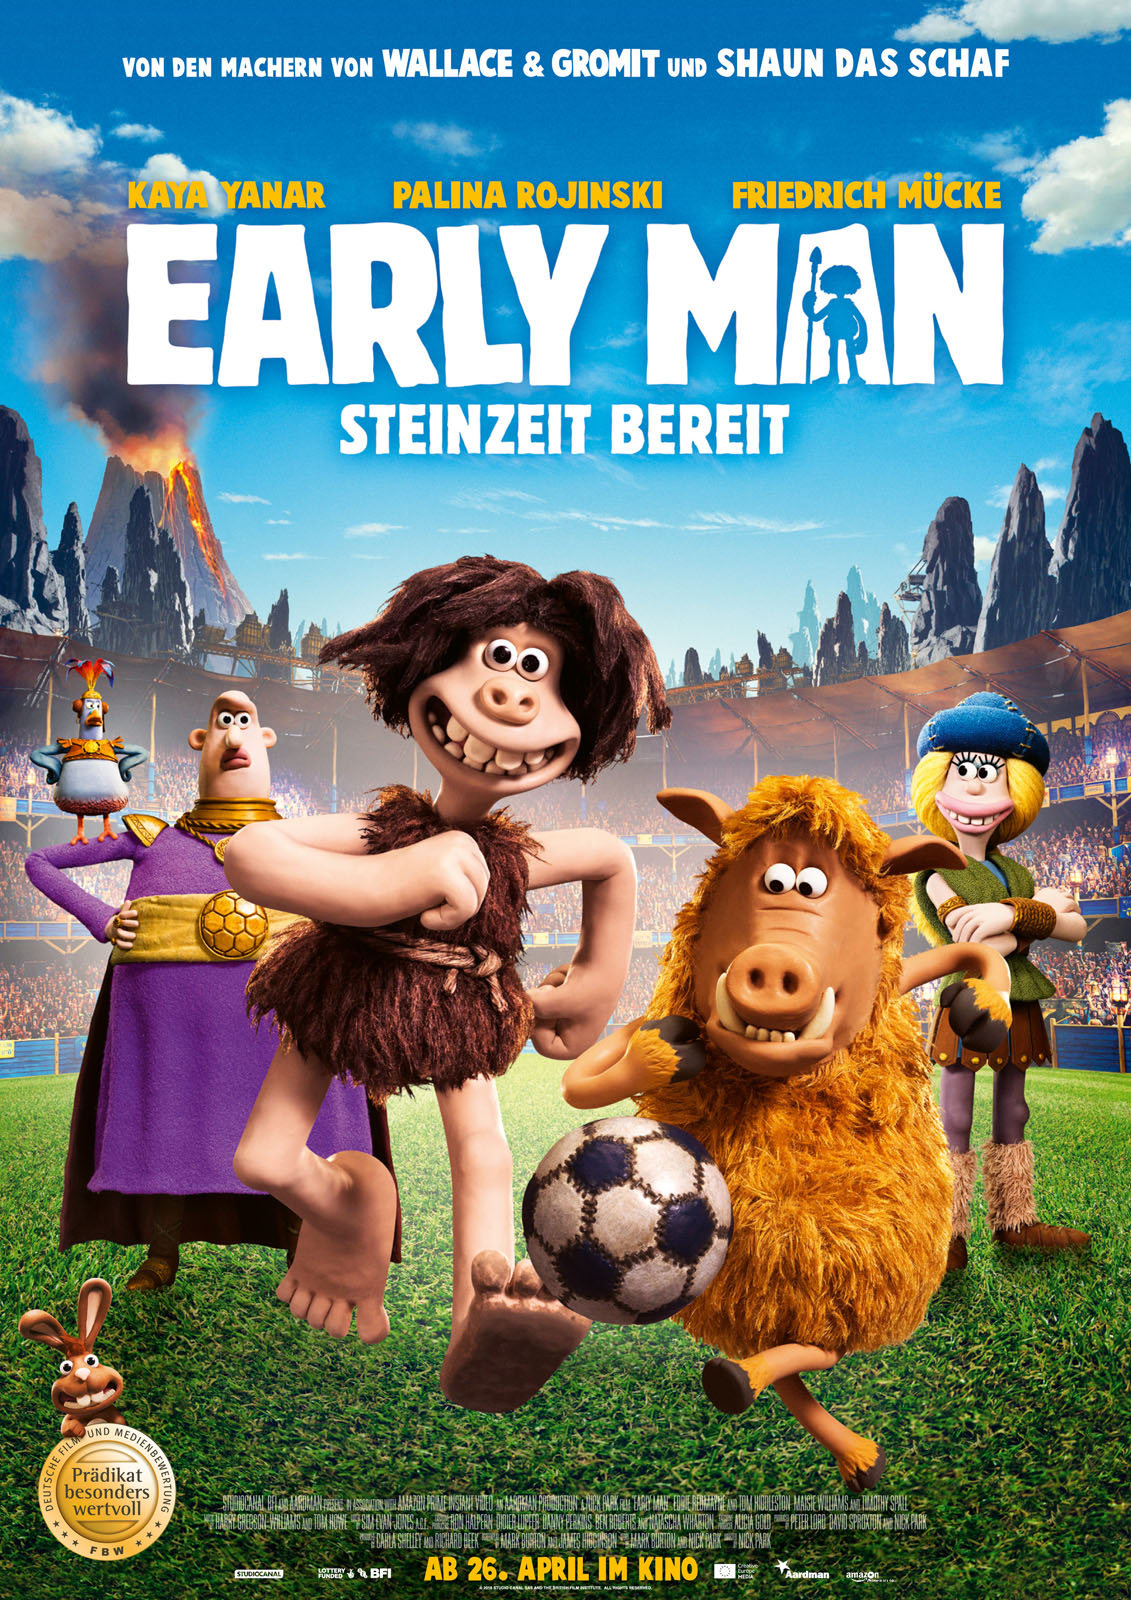 Early Man - Steinzeit bereit / Early Man online schauen in HD als Stream & Download